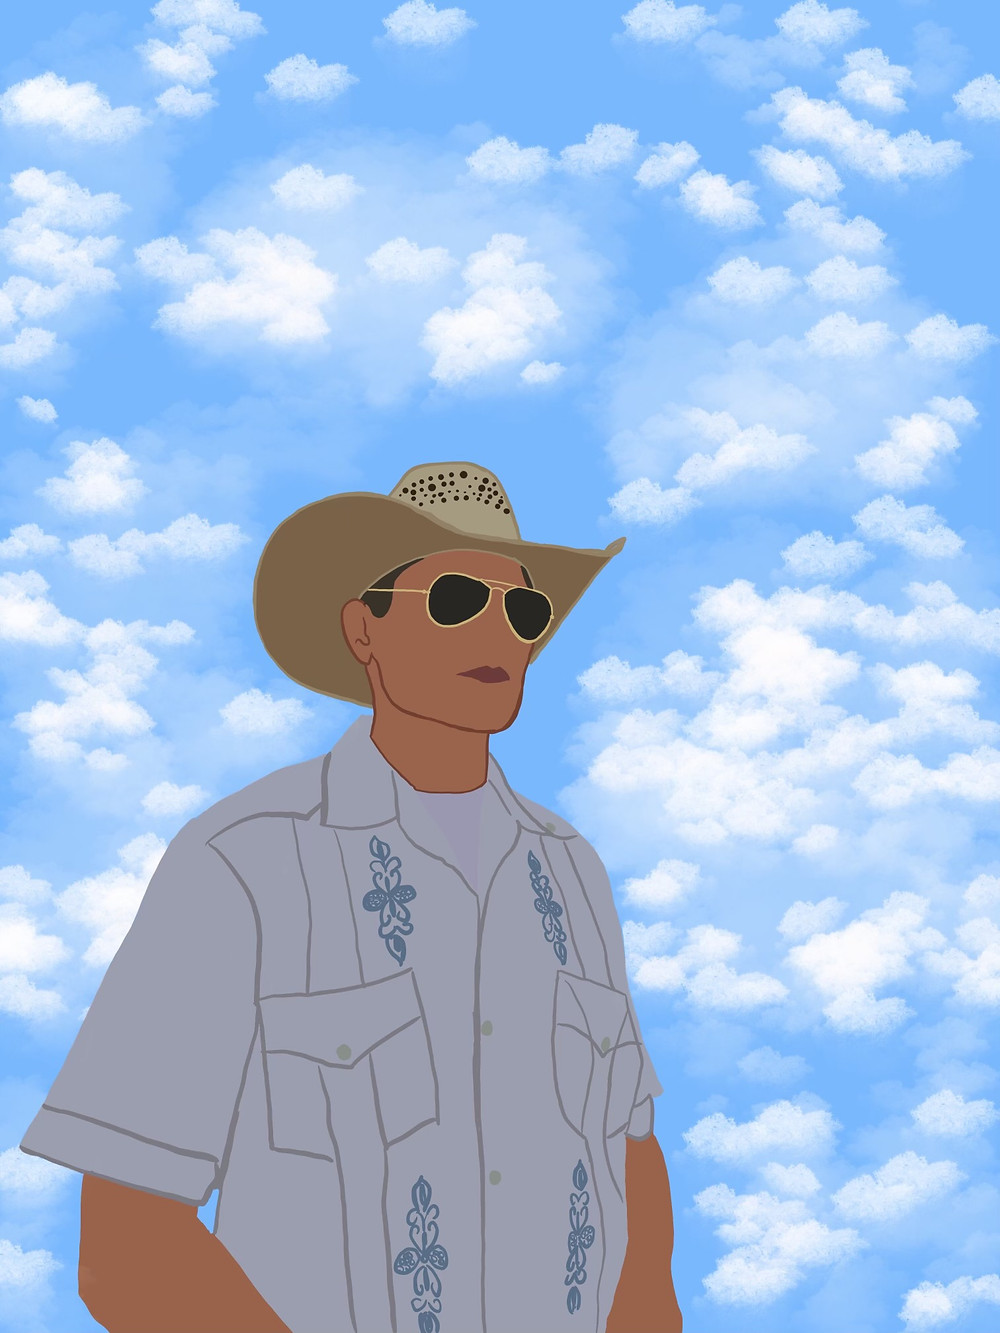 A man in aviator glasses, cowboy hat, and guayabera shirt stands in front of a cloud-dotted sky.